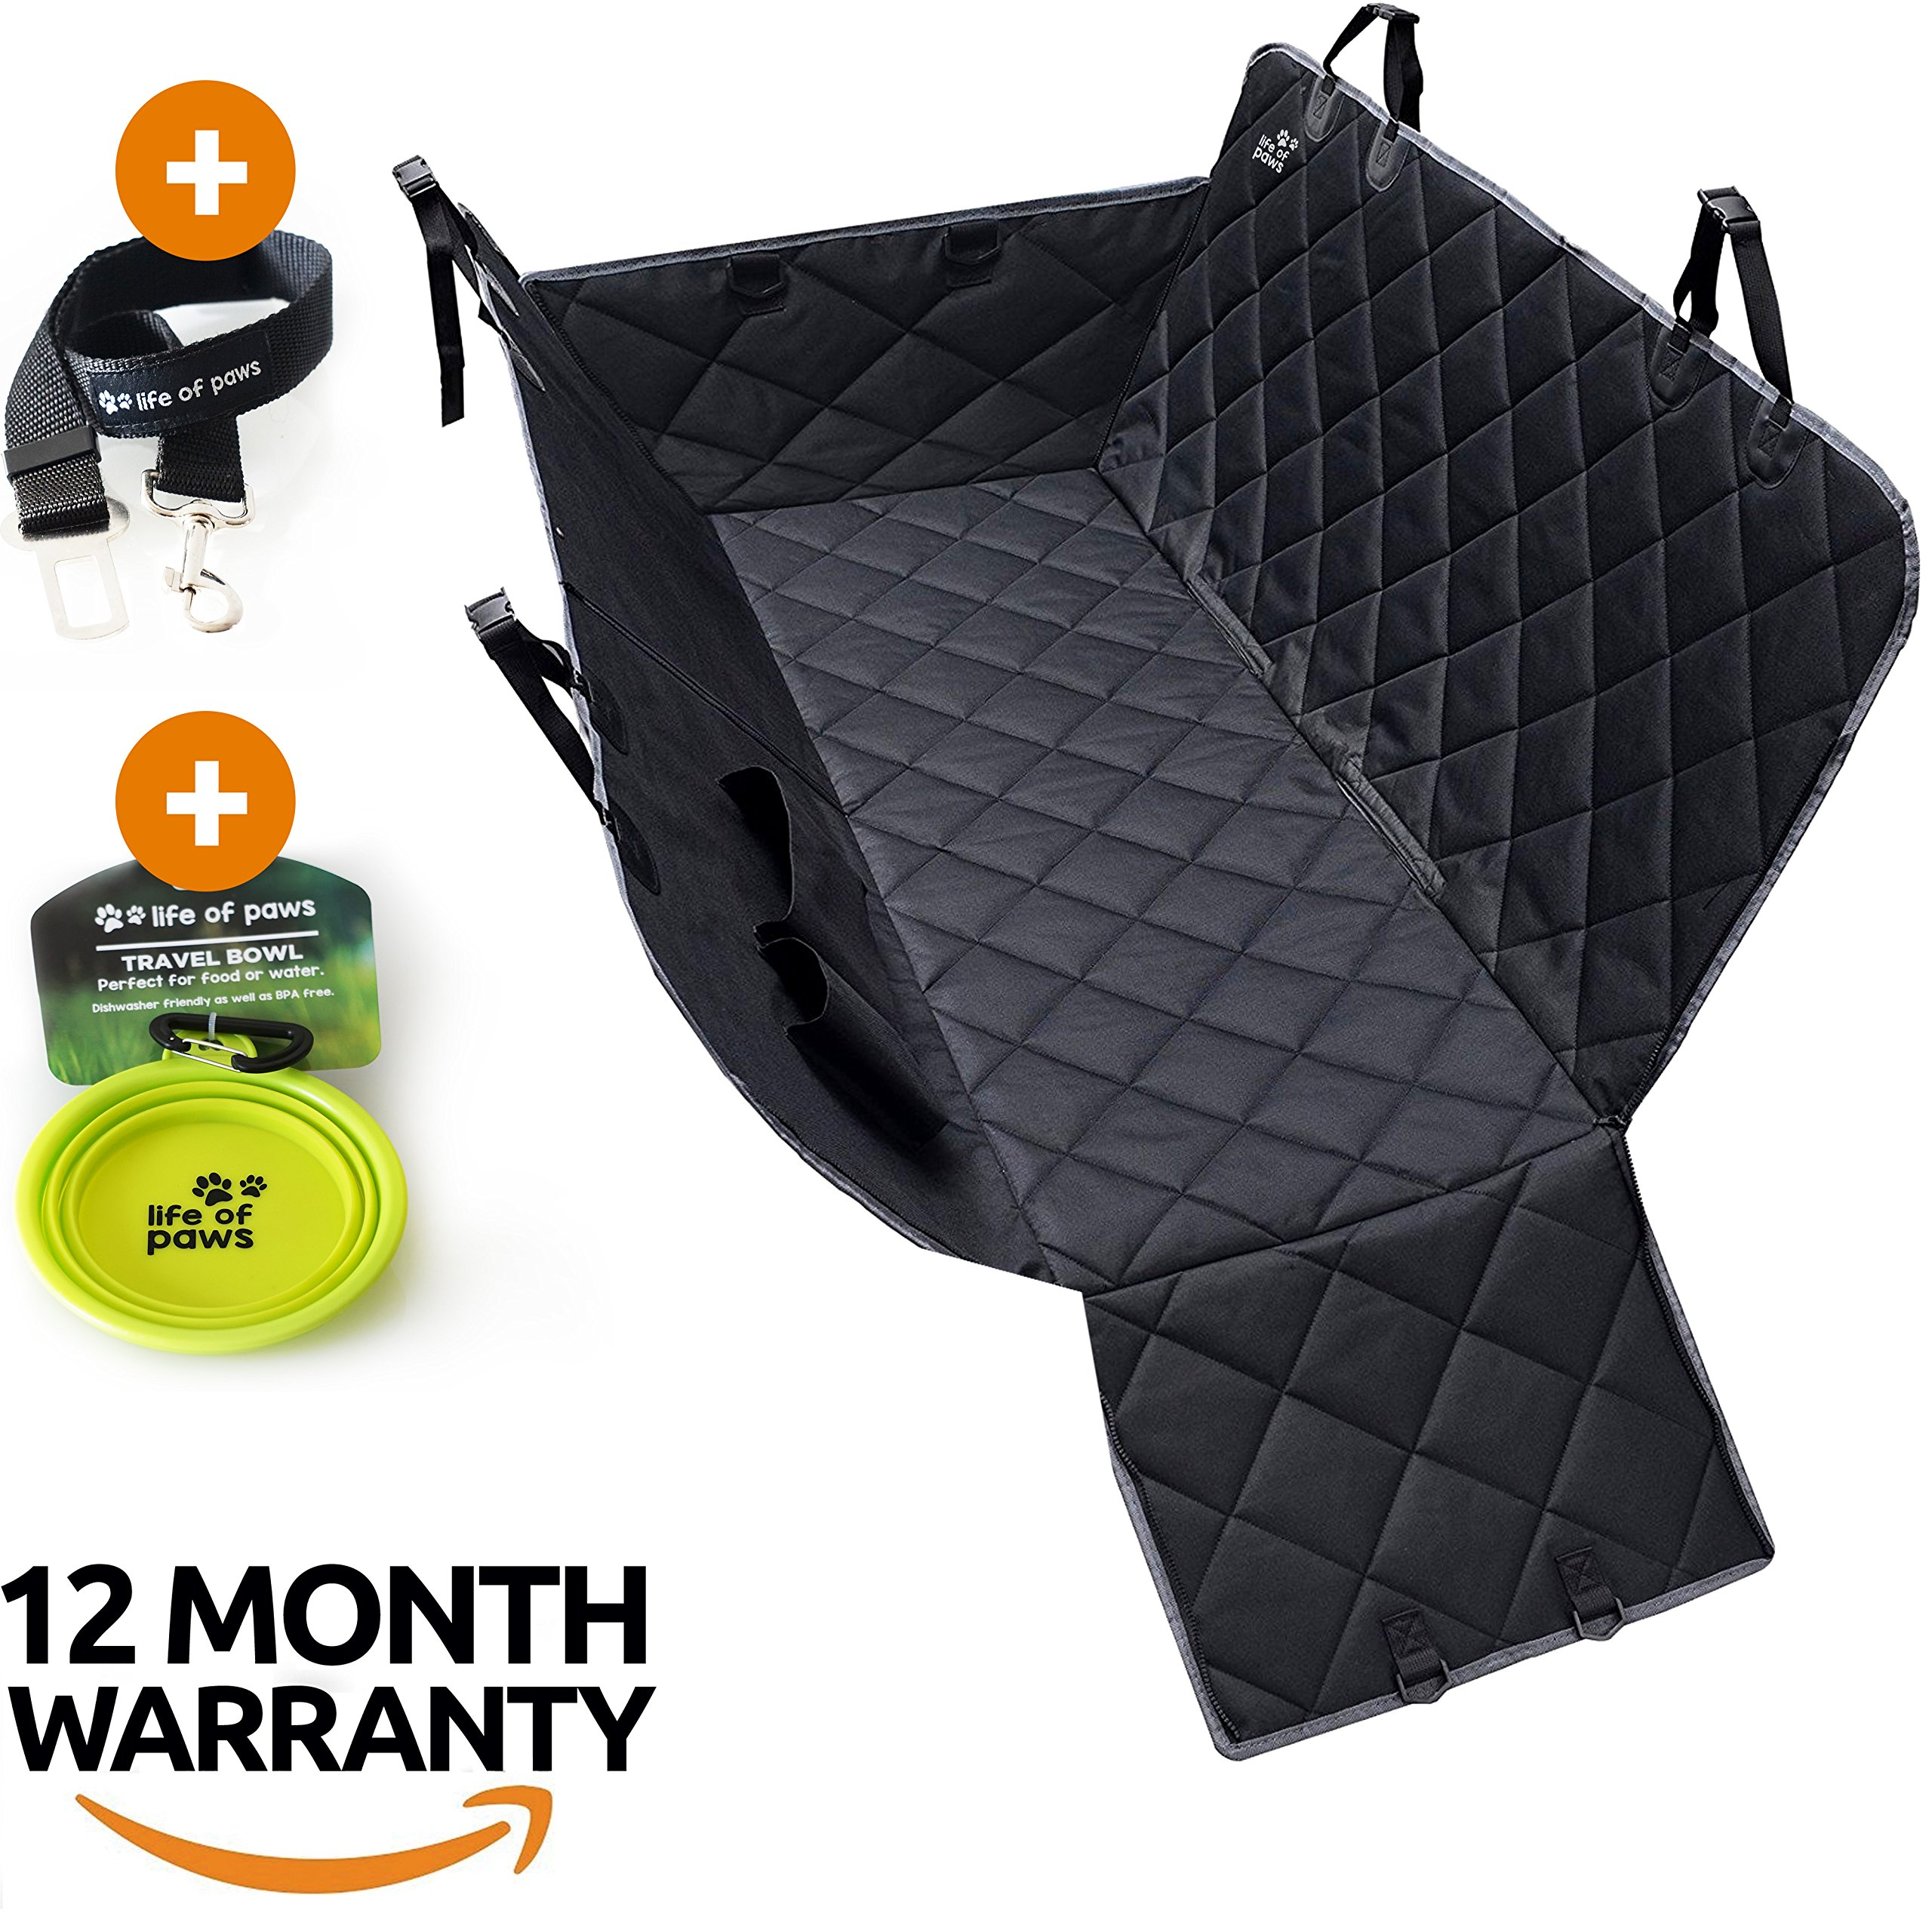 Backseat Car Cover for Dogs, Premium durable Hammock with improved quality stitching and zippers. 600D Heavy duty, waterproof, scratch proof, non slip seat covers for cars, trucks and SUVs.